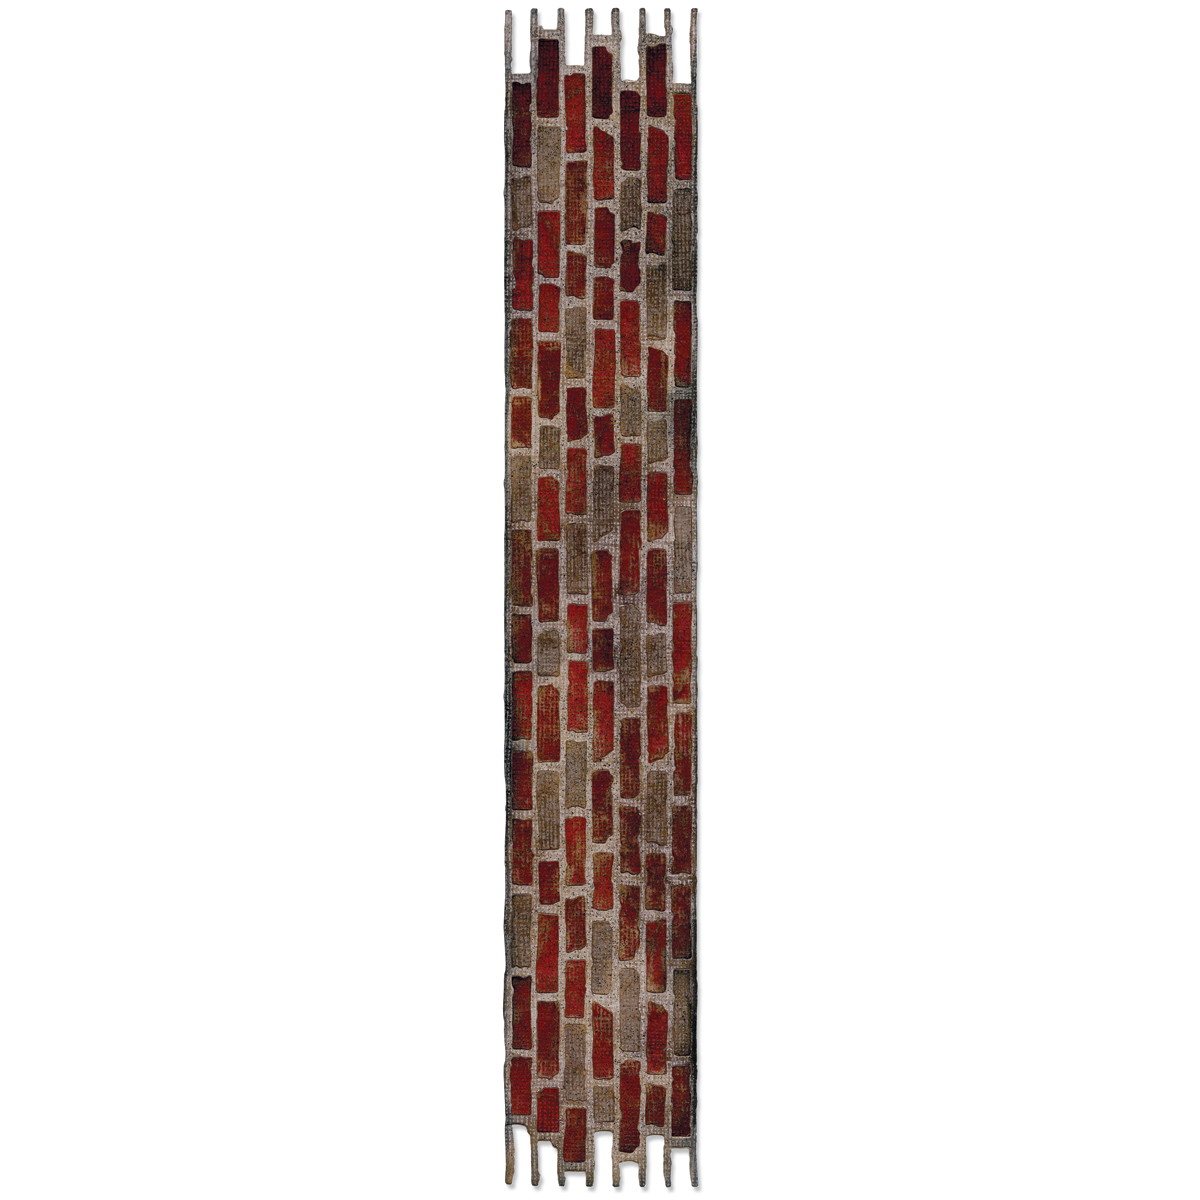 Sizzix Sizzlits Decorative Strip Die By Tim Holtz Brick Wall